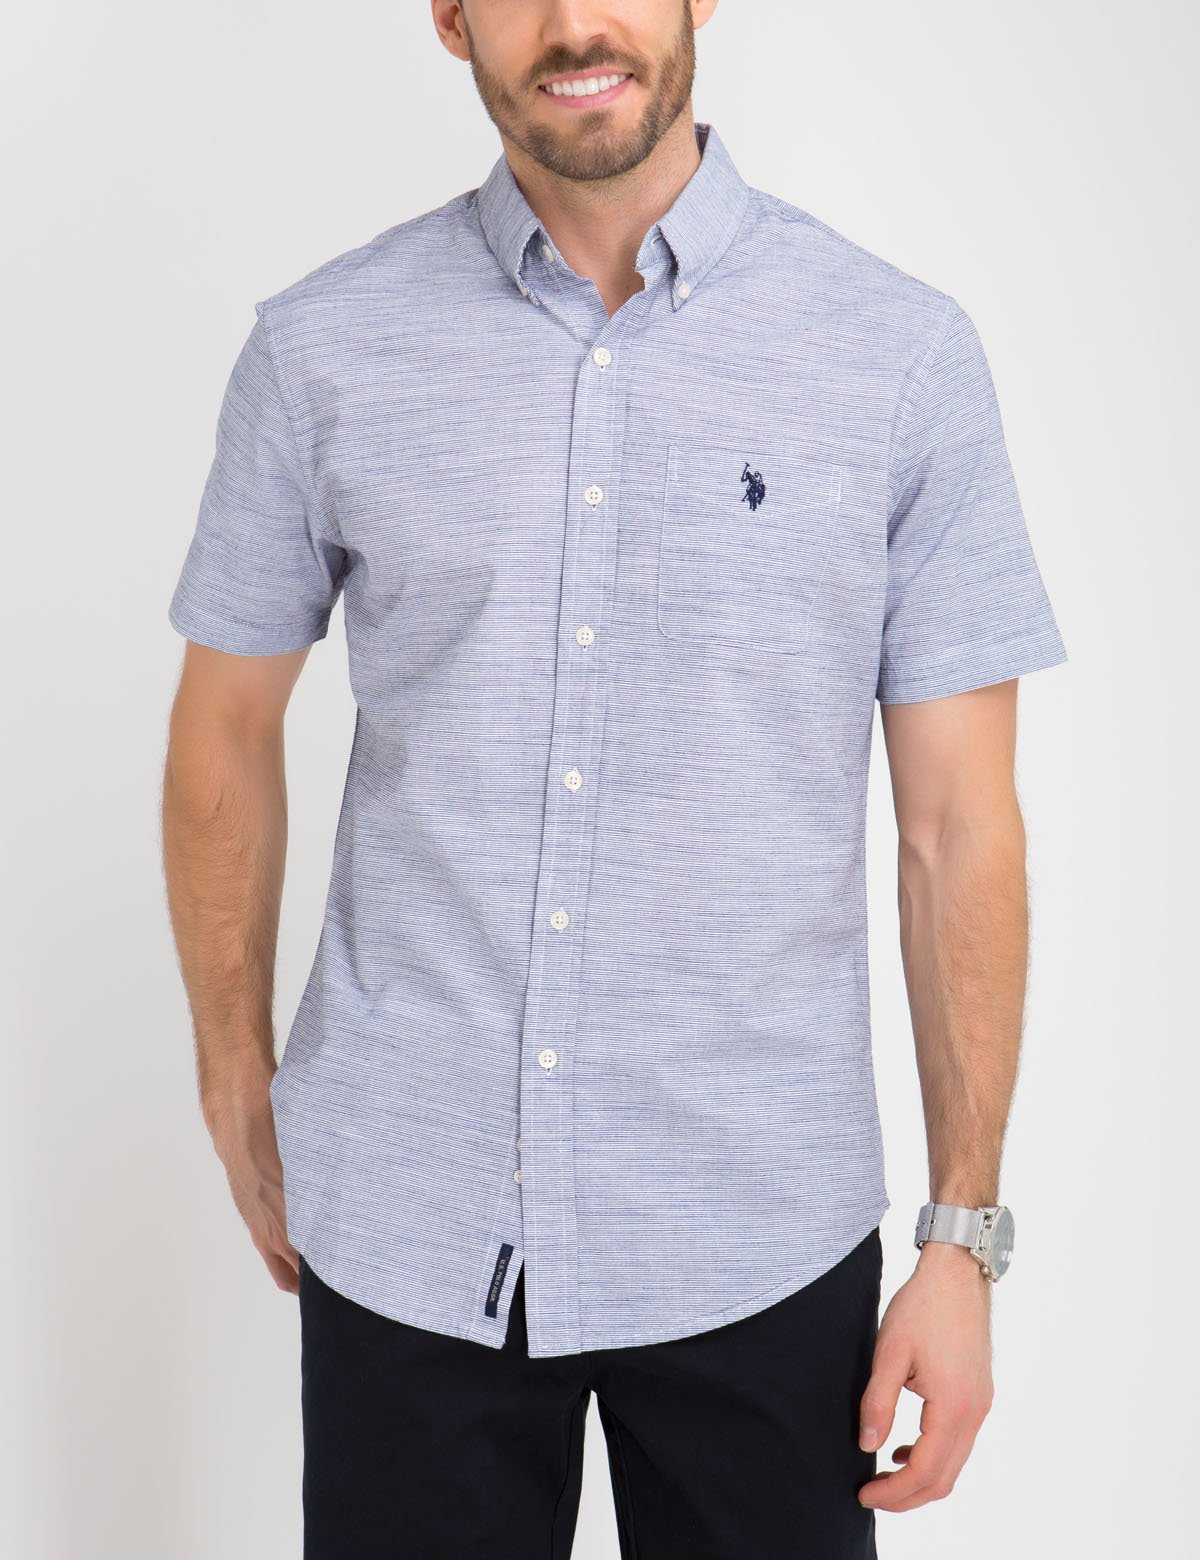 CLASSIC FIT COTTON POPLIN SHIRT